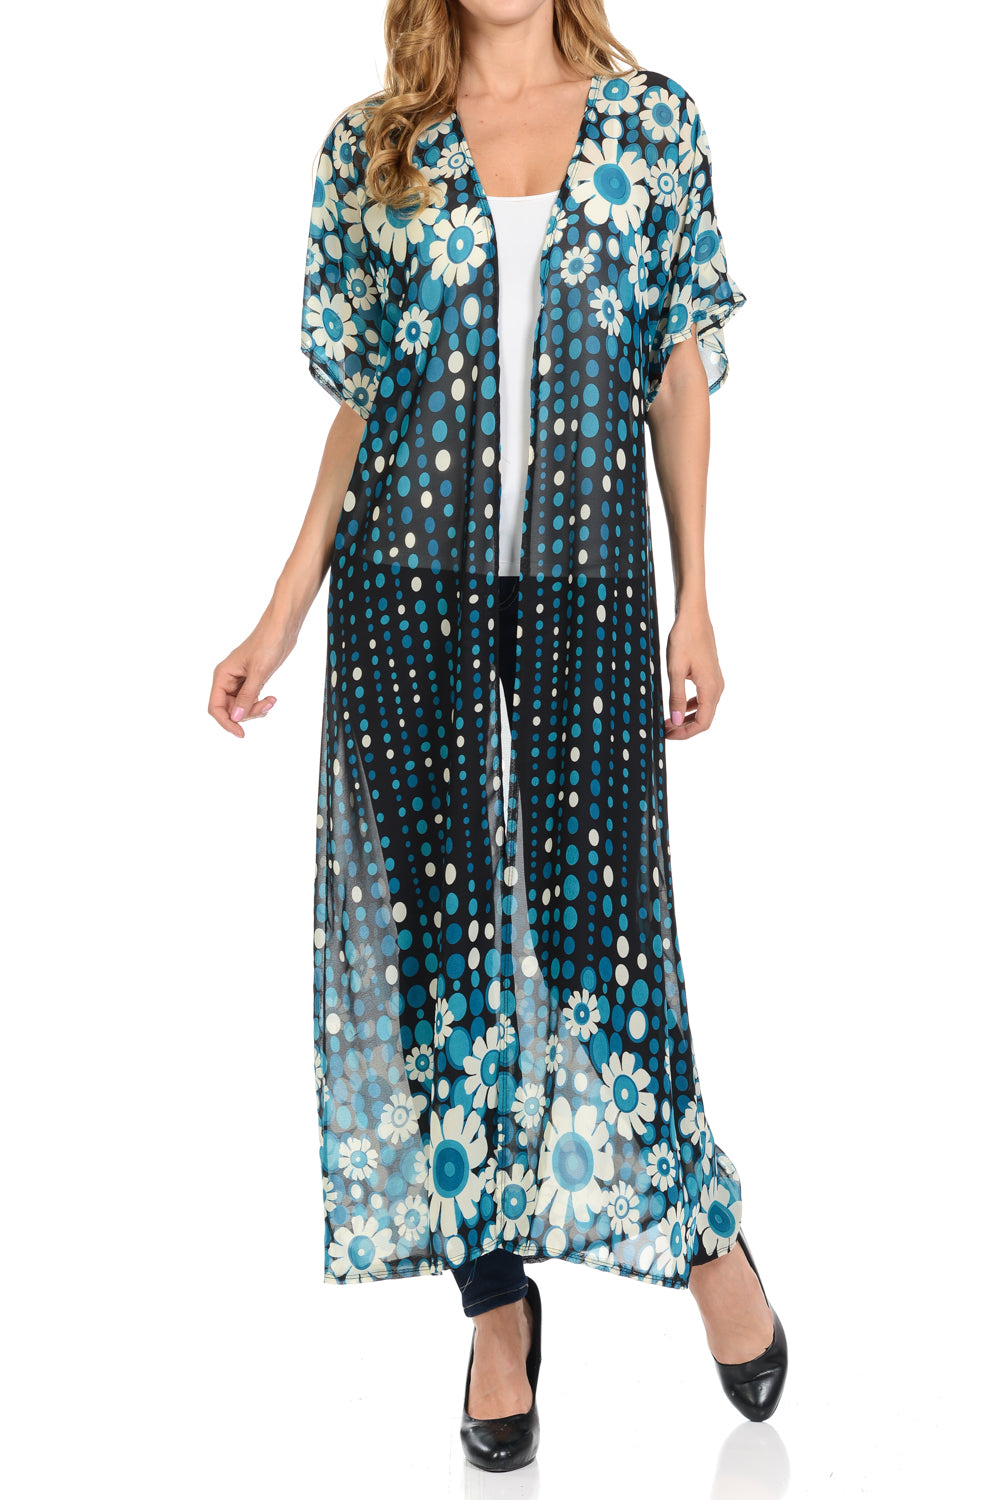 b789bb0a15 Long maxi Cardigan See through beach cover up Trendy Fashion item Four  seasons BlackTeal Color ...